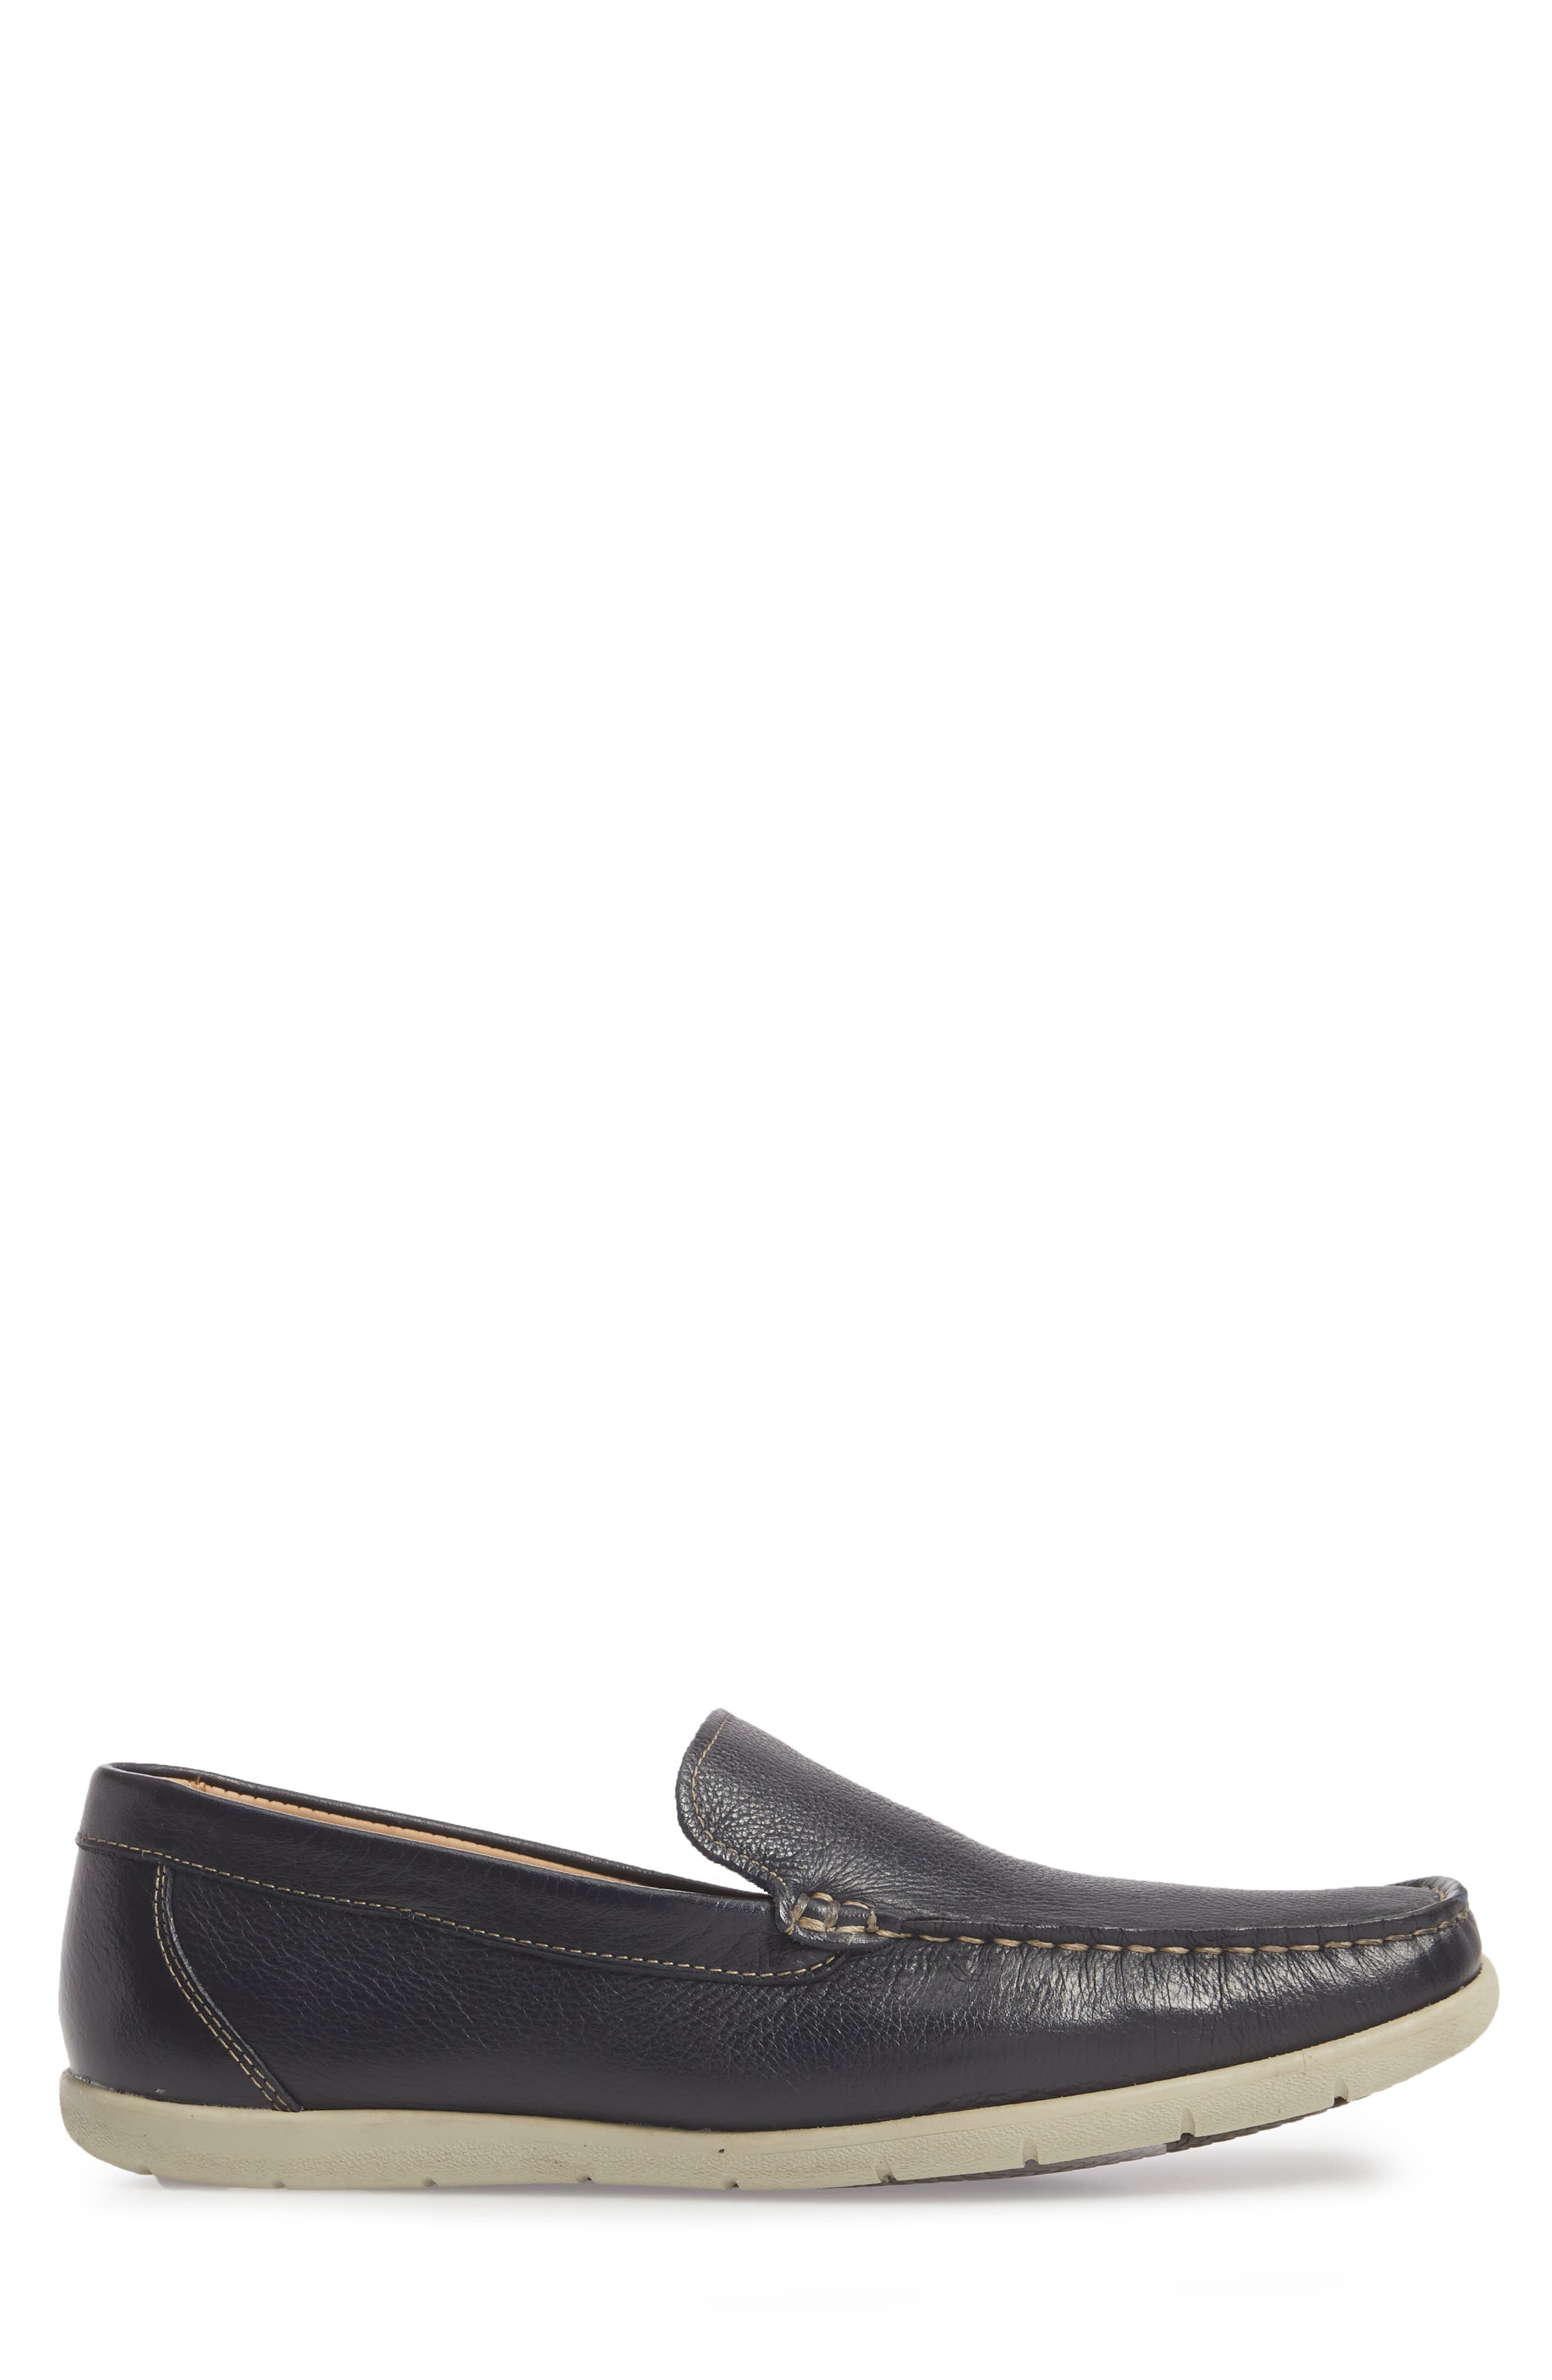 Calistoga Loafer,                             Alternate thumbnail 3, color,                             Navy Leather